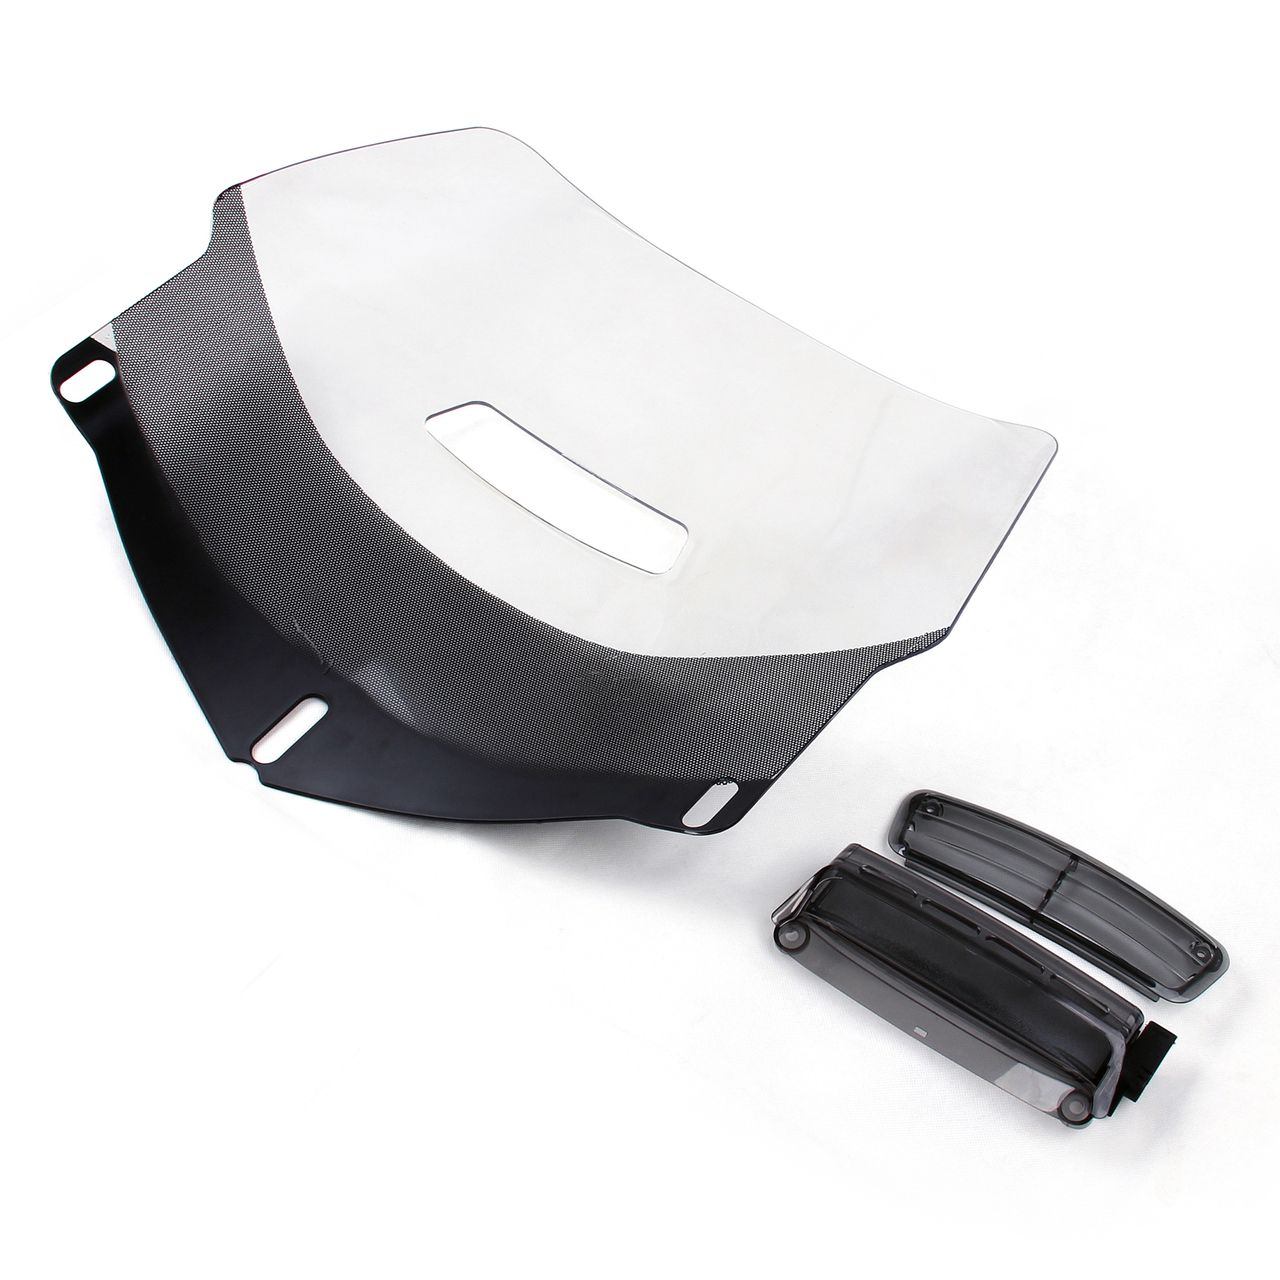 Motorcycle Windshield Windscreen Air Vent For Honda Goldwing GL1800 2001-2014